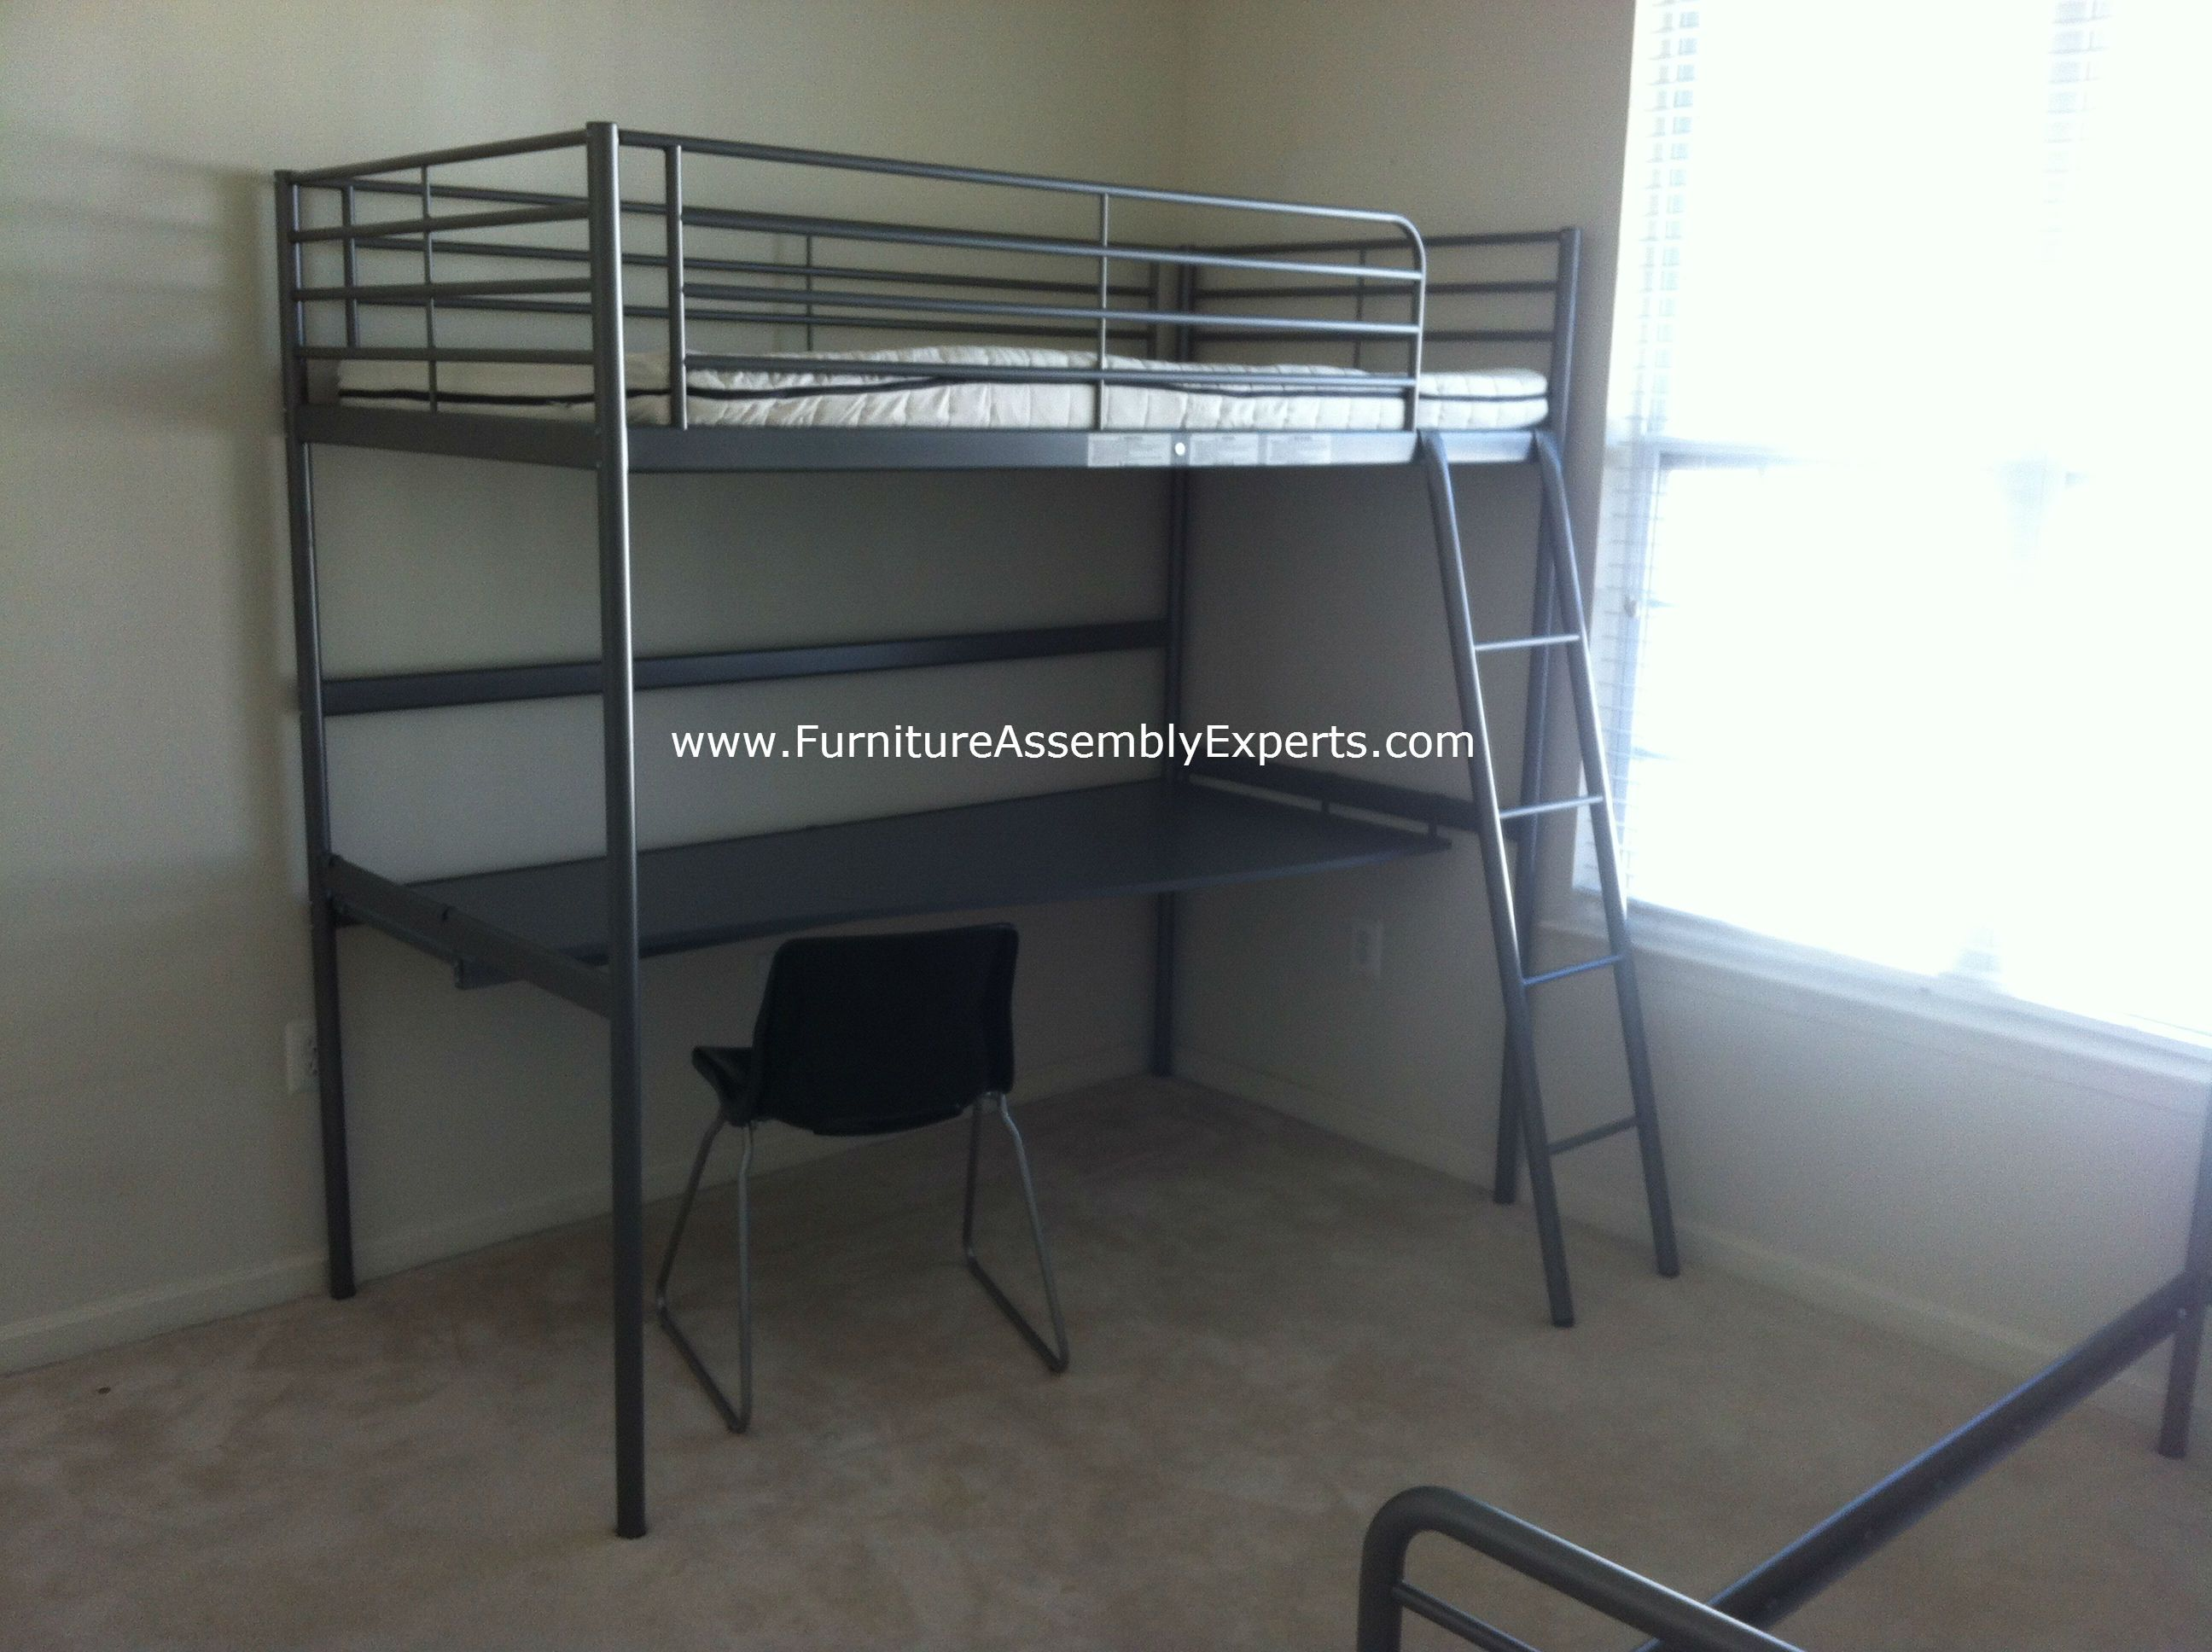 Bunk bed with desk ikea - Ikea Loft Bed With Desk Assembled In Washington Dc By Furniture Assembly Experts Llc Call